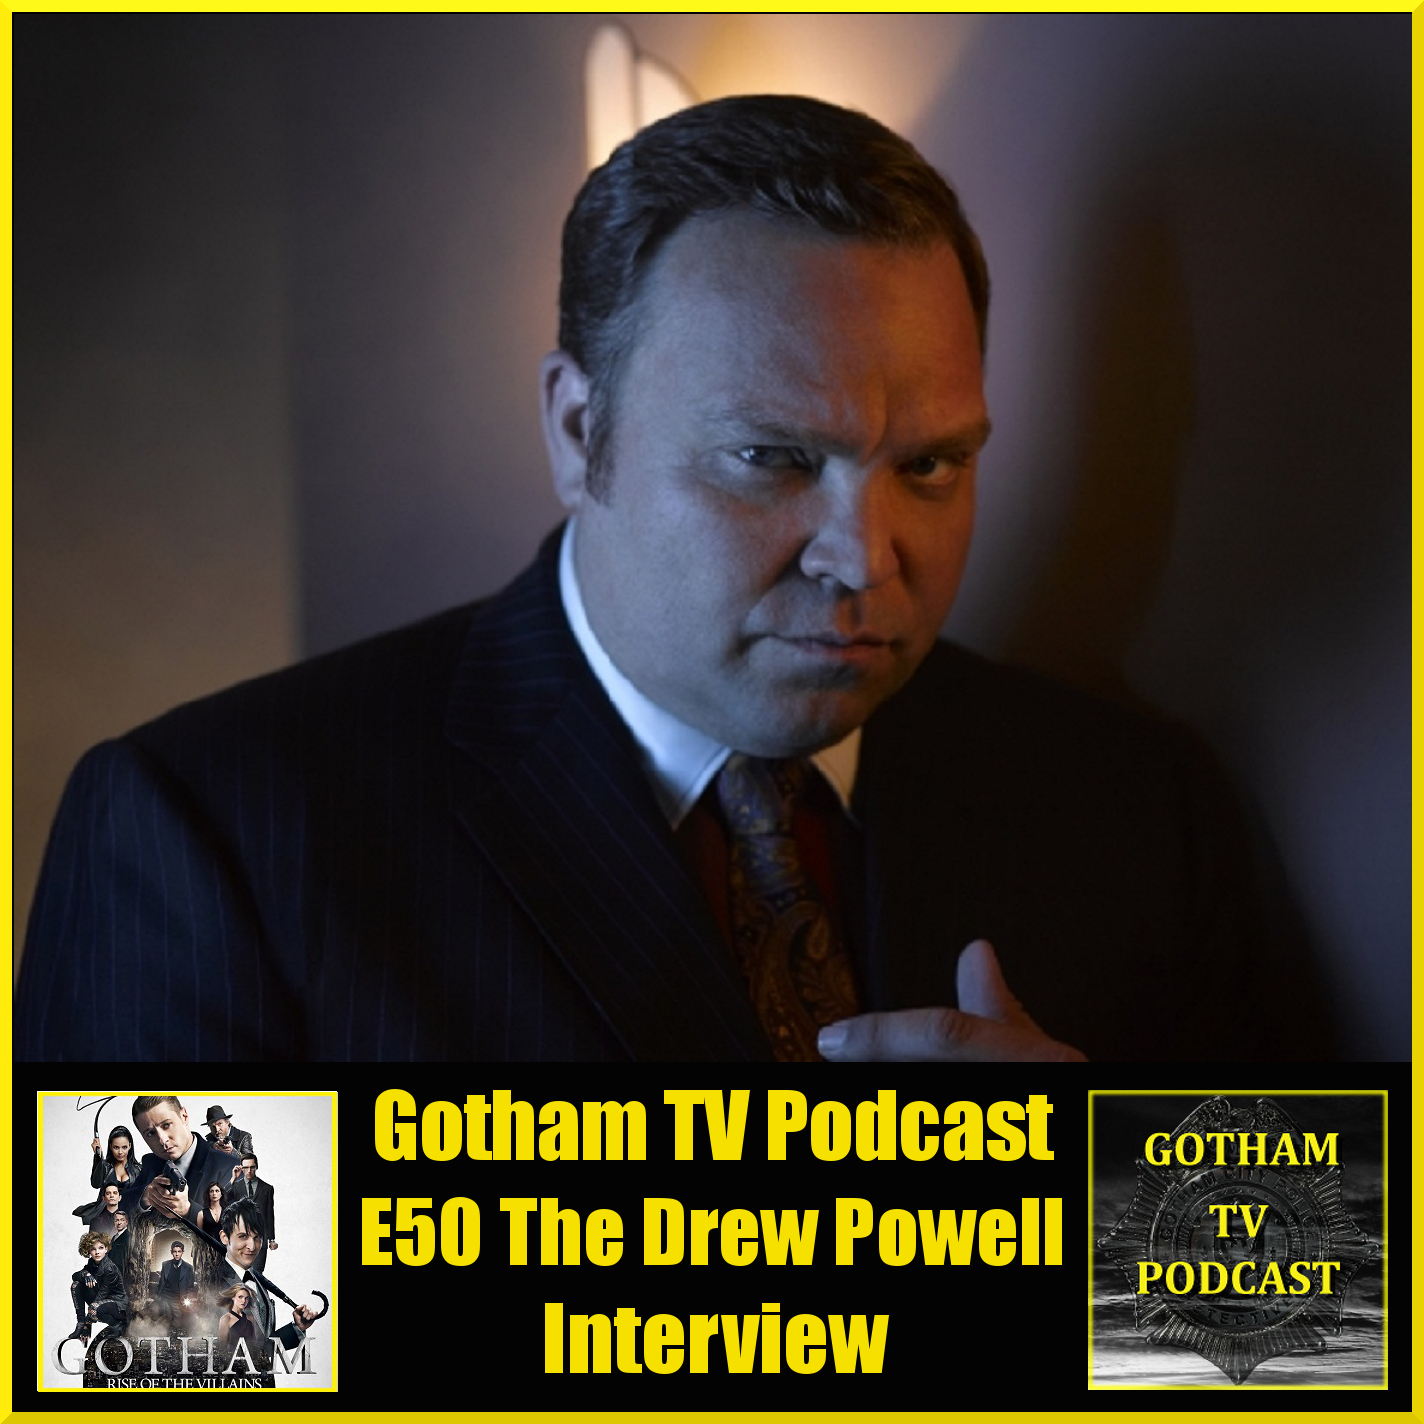 Our interview with Drew Powell - Gotham's Butch Gilzean